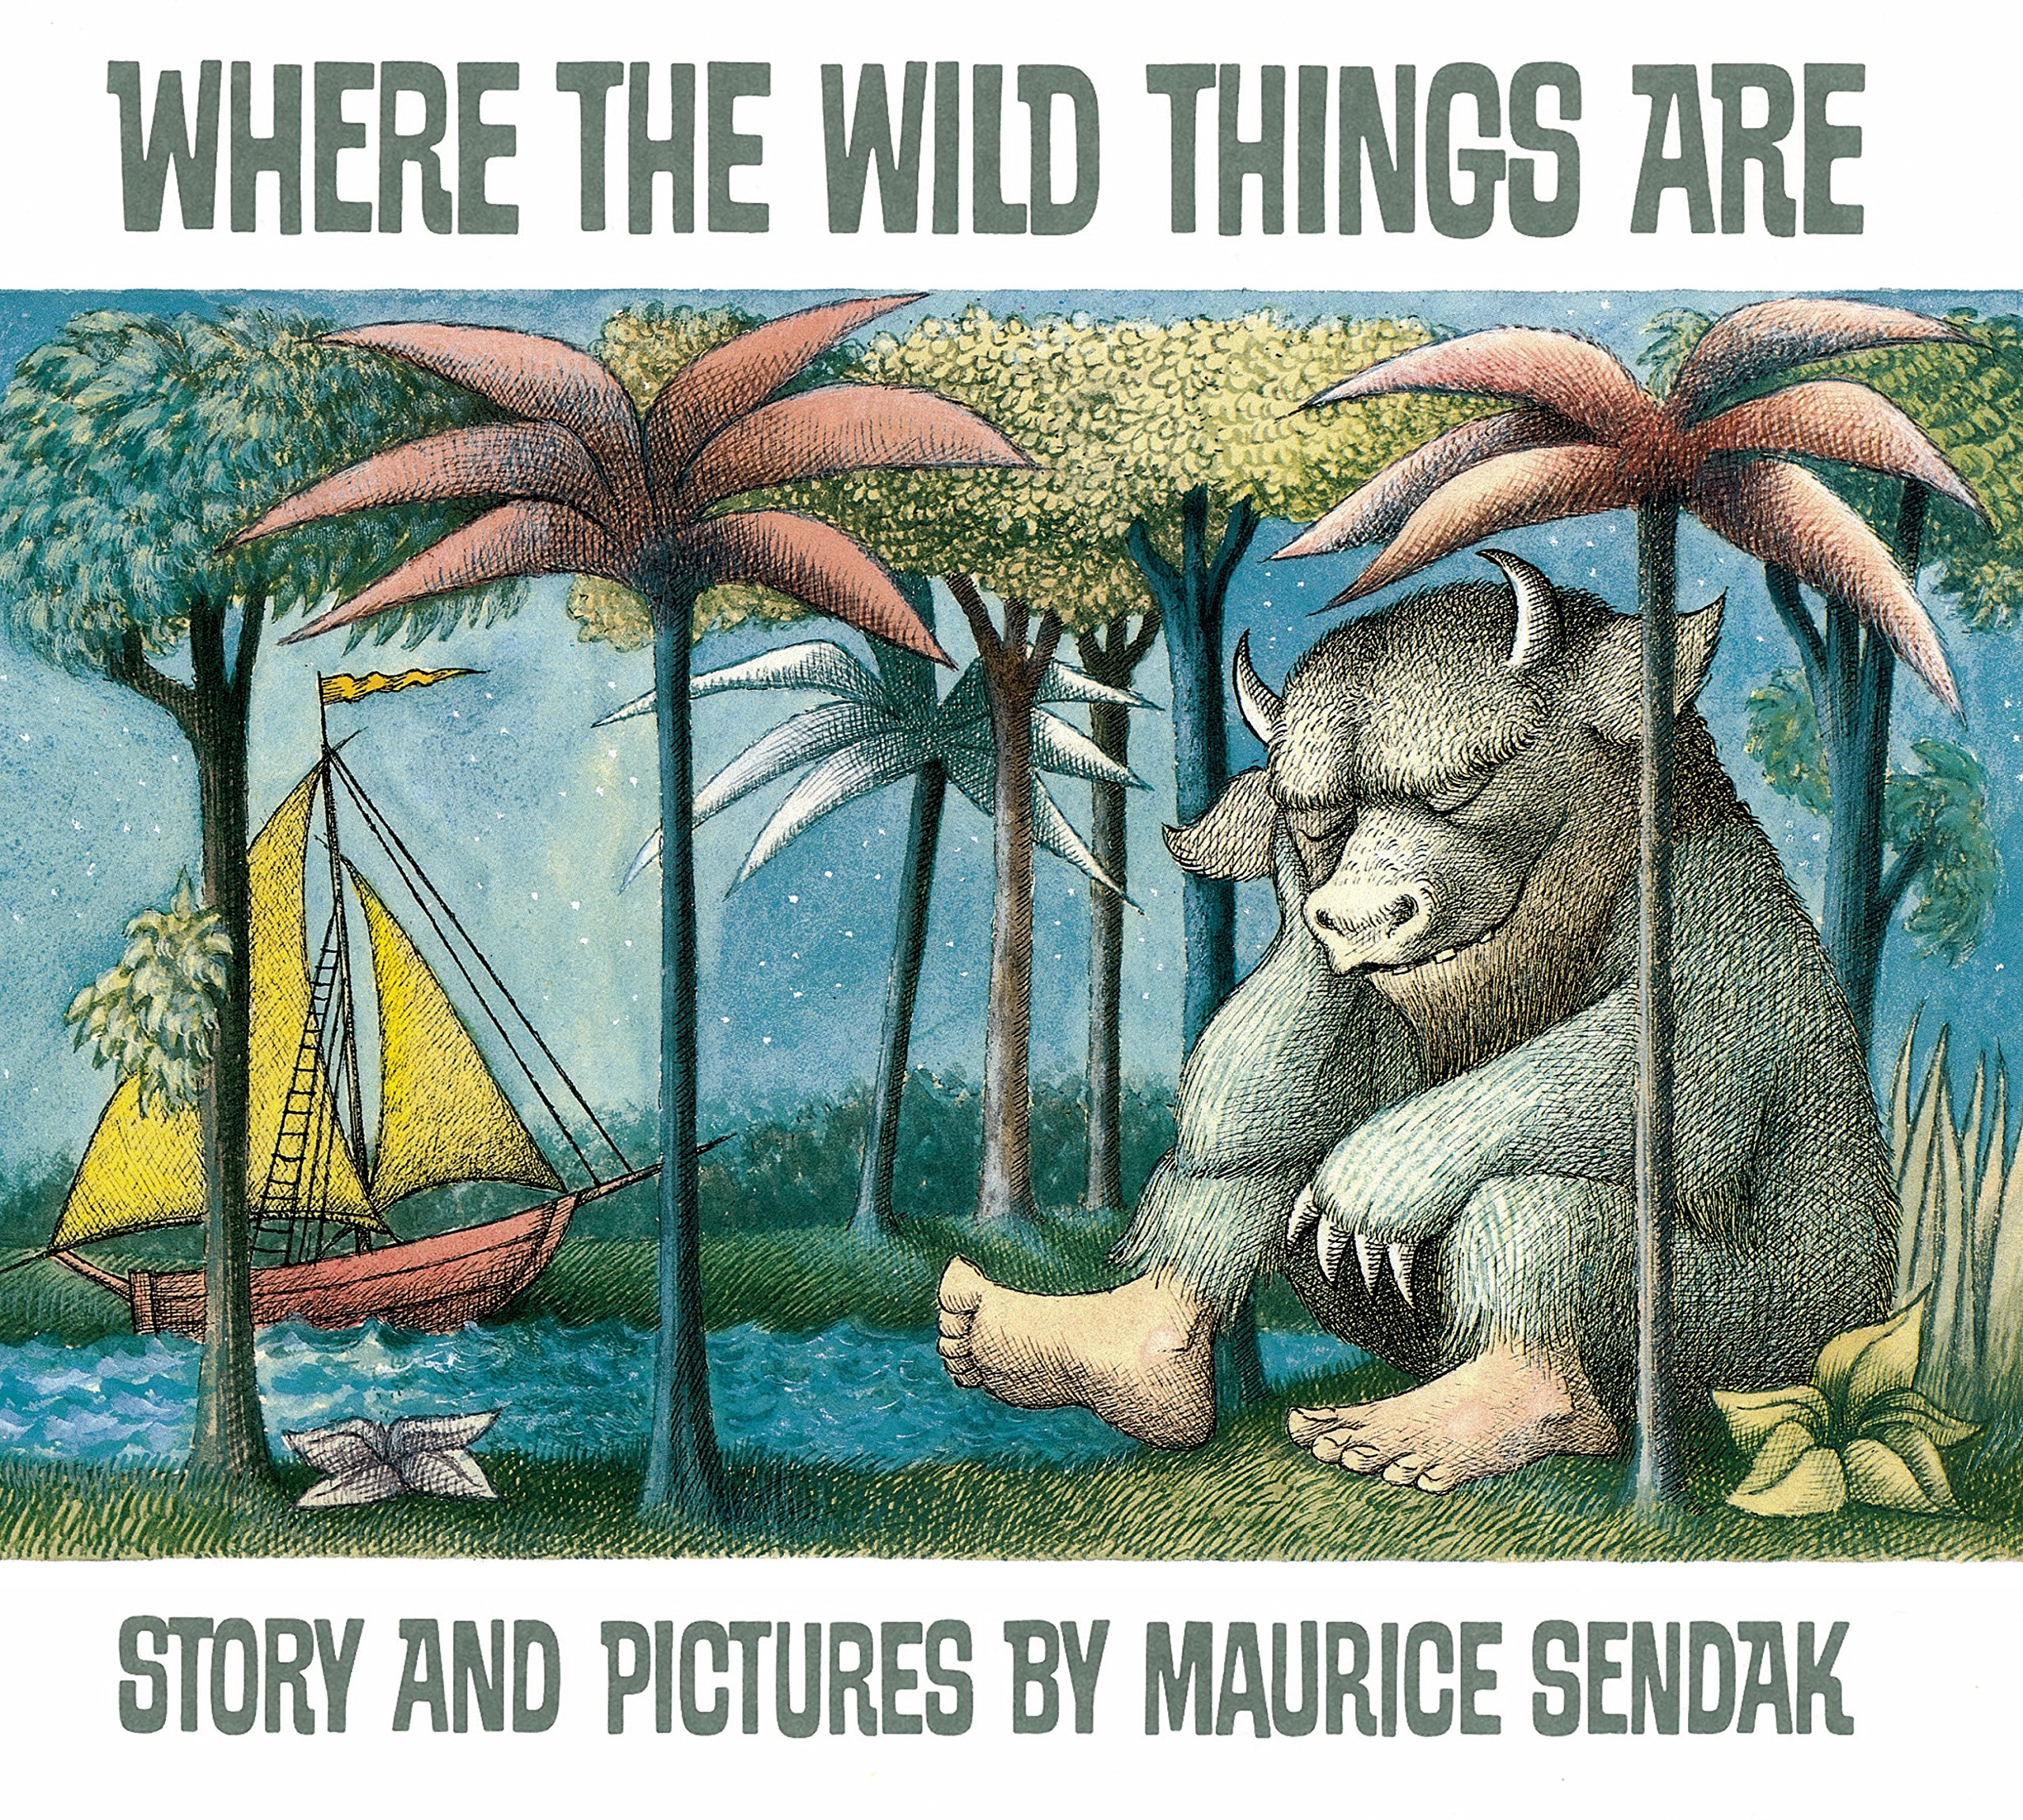 1. 'Where the Wild Things Are'